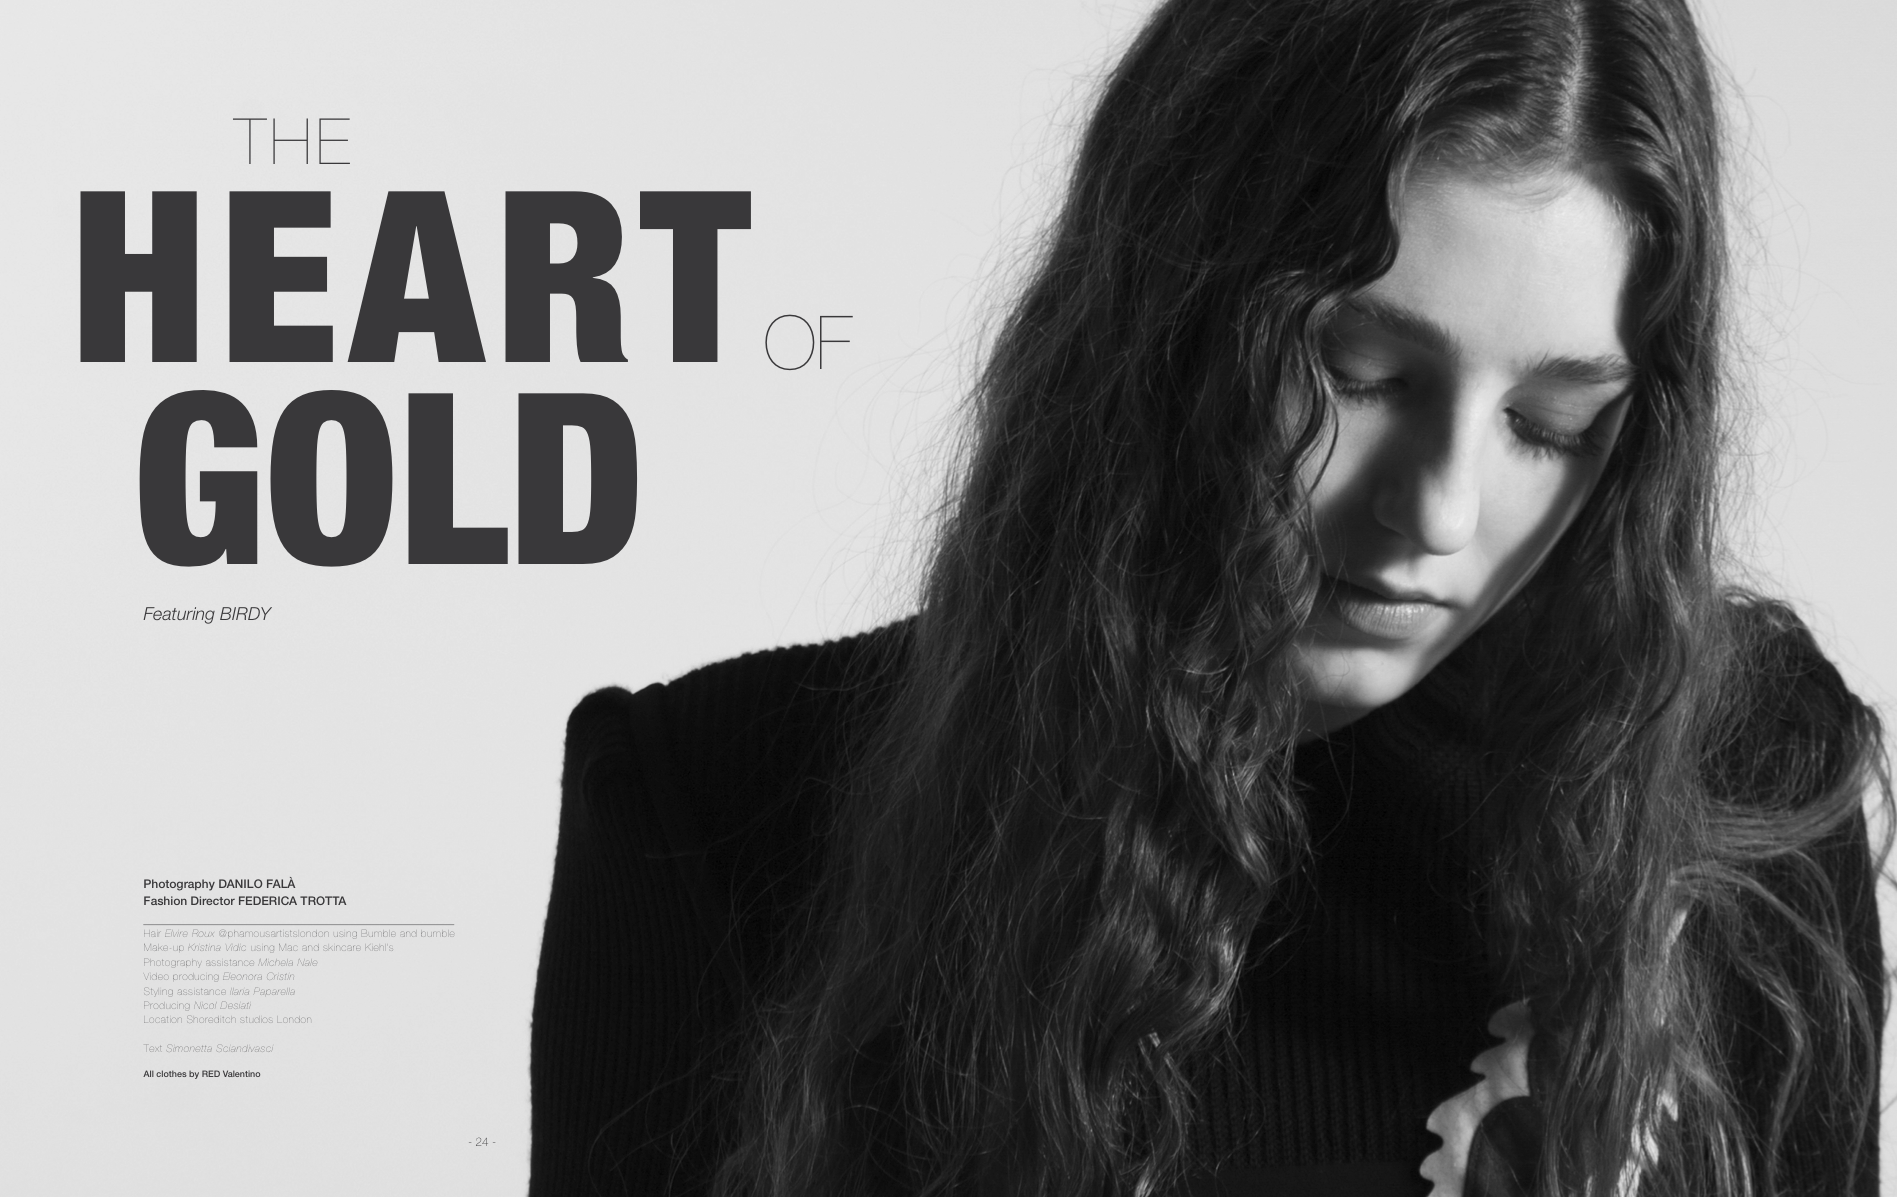 COVER STORY – MIA LE JOURNAL ISSUE N°2 // THE HEART OF GOLD